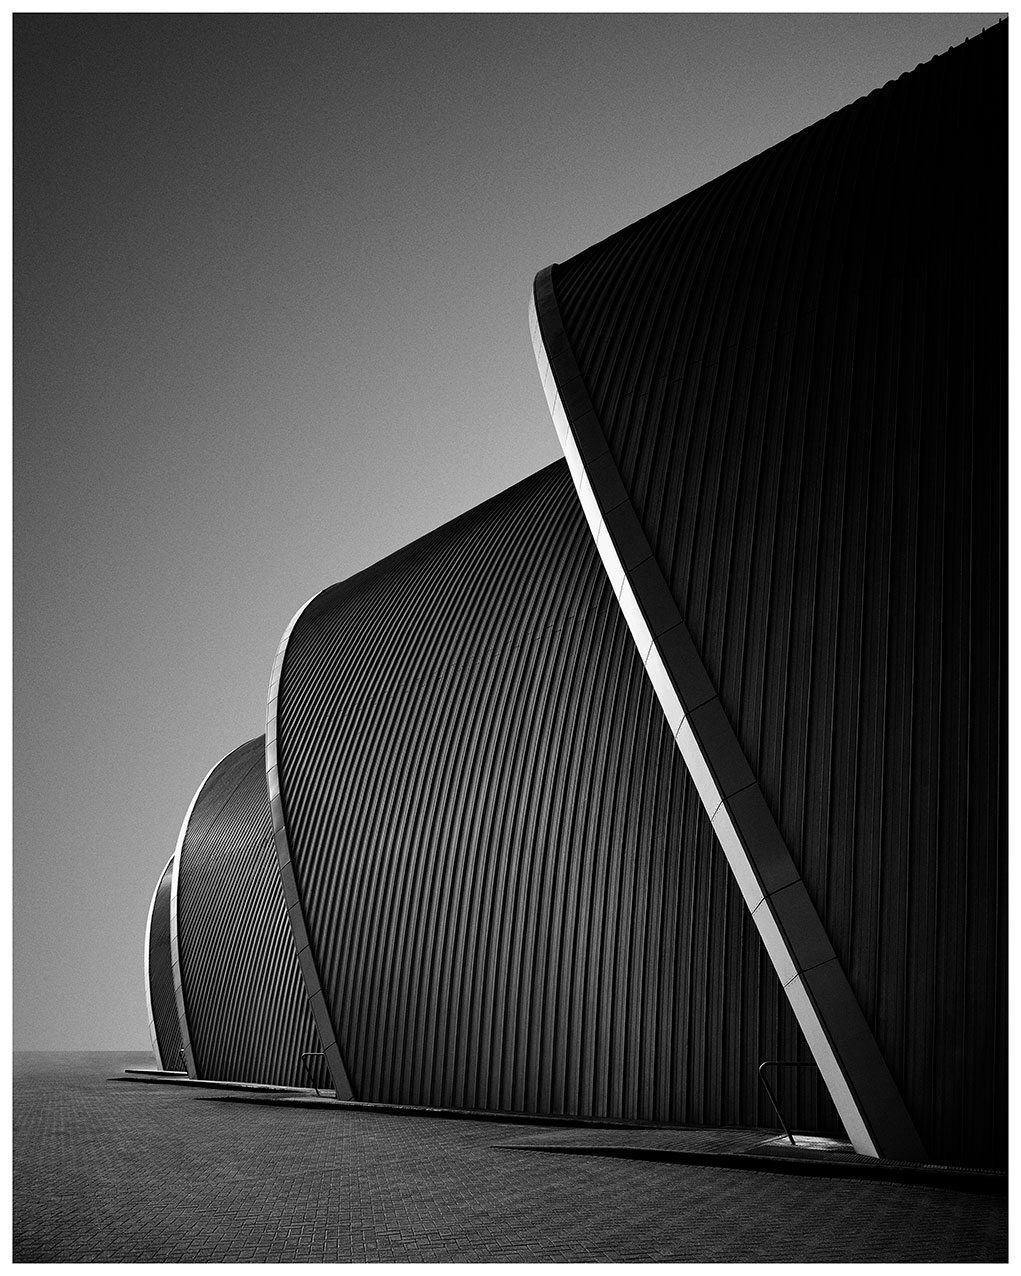 Scotland 2019 - New folio of images on modern architecture in Scotland.